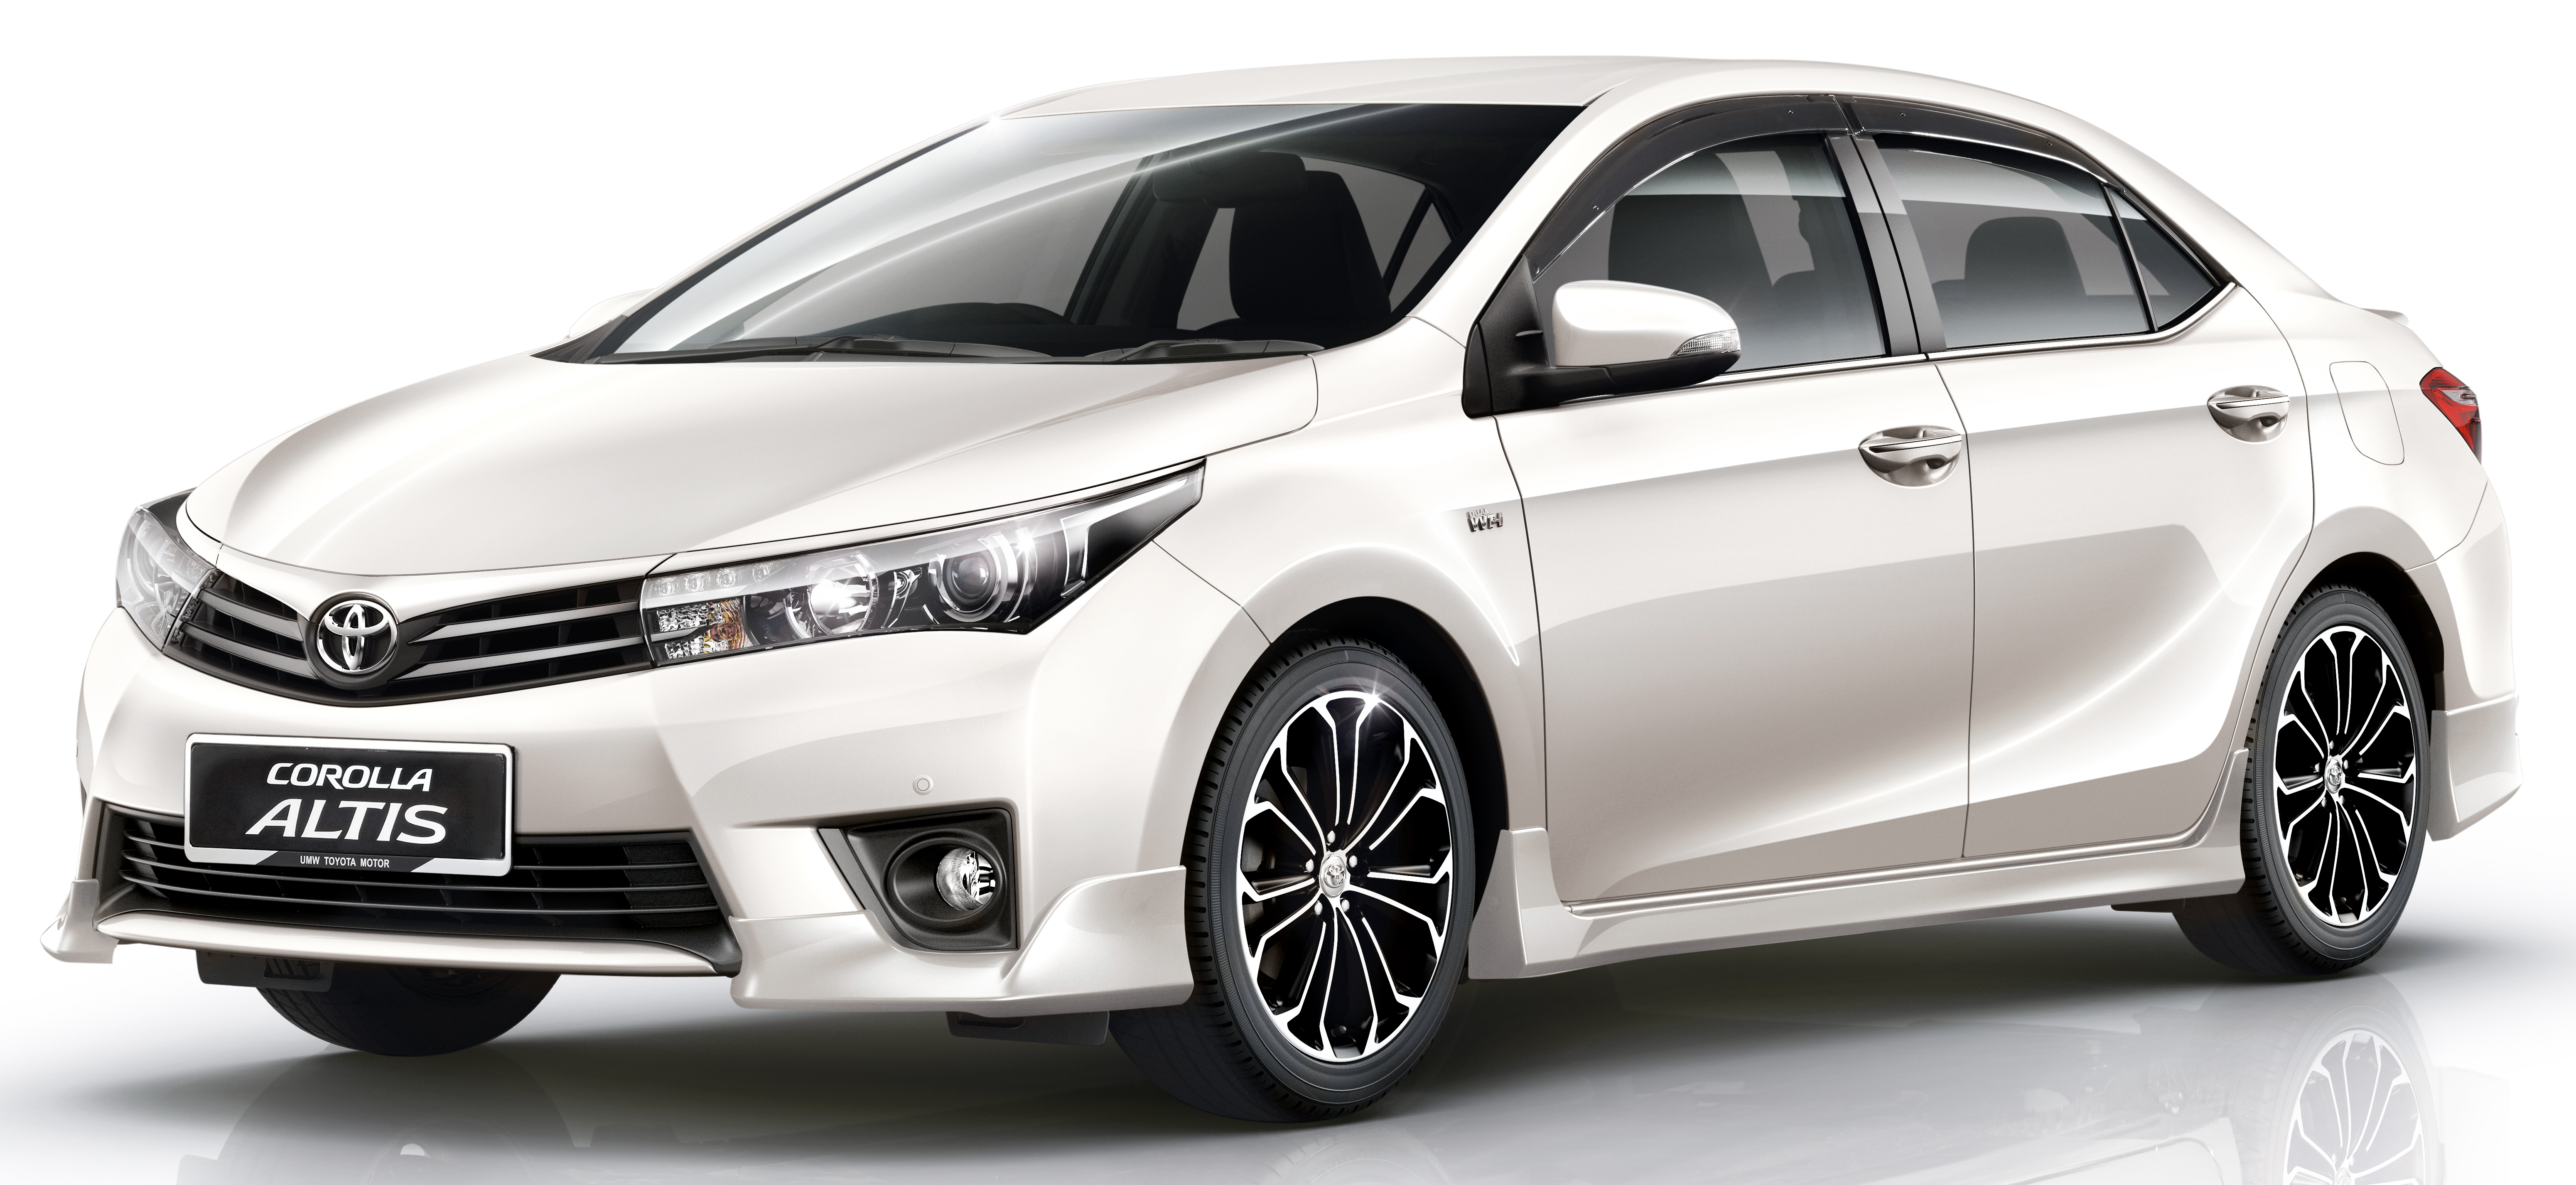 2014 Toyota Corolla For Sale >> 2014 Toyota Corolla Altis Malaysian prices confirmed ...